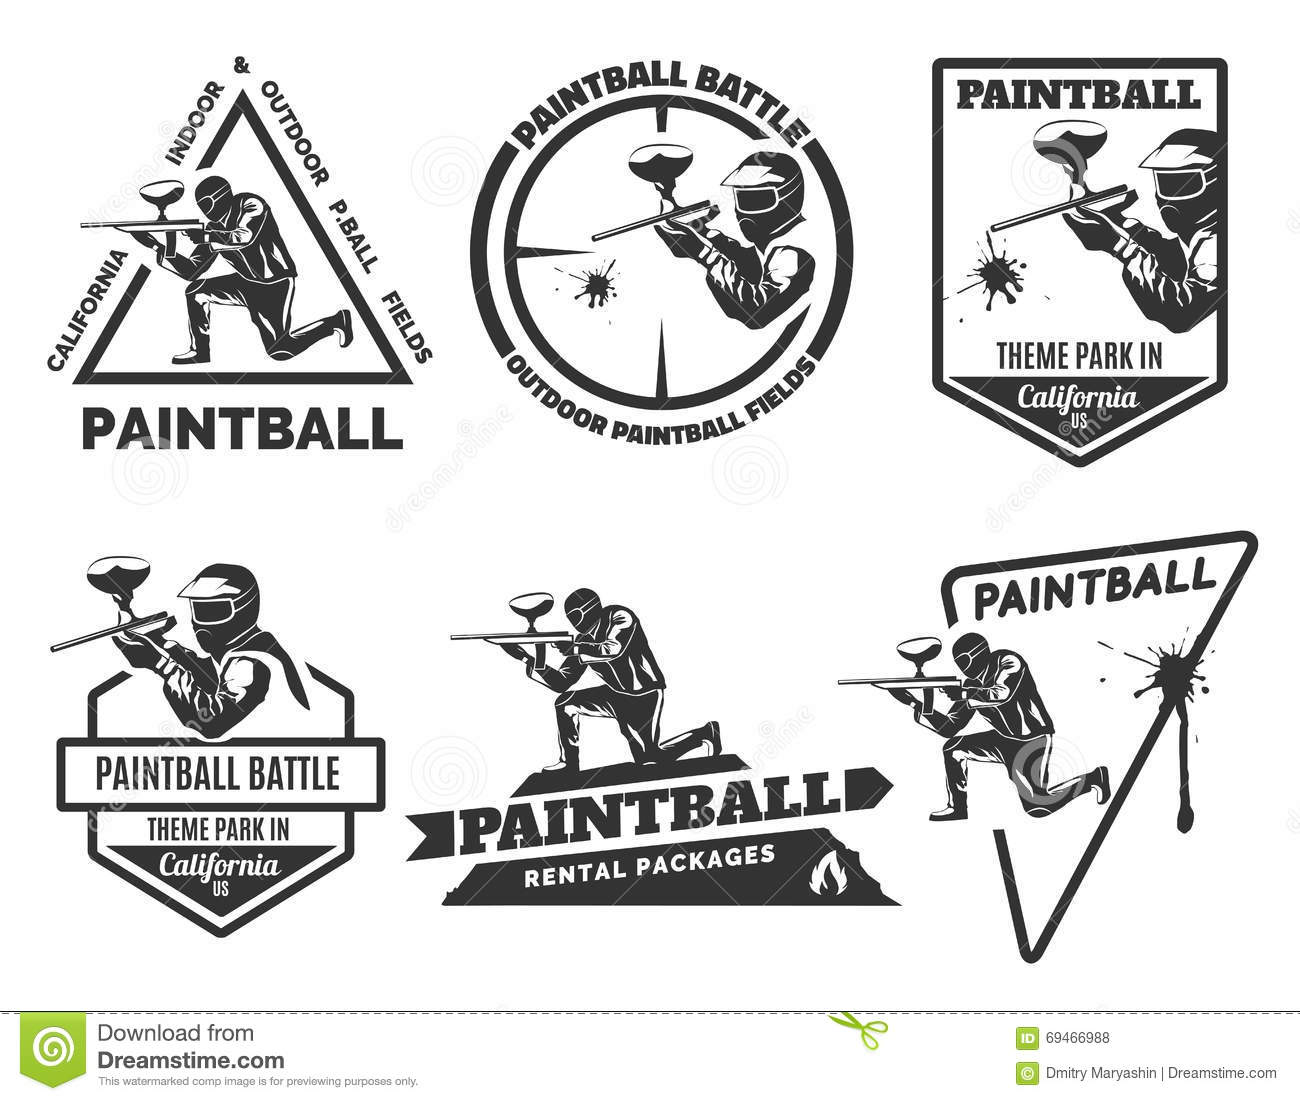 Ensemble de logos monochromes de paintball